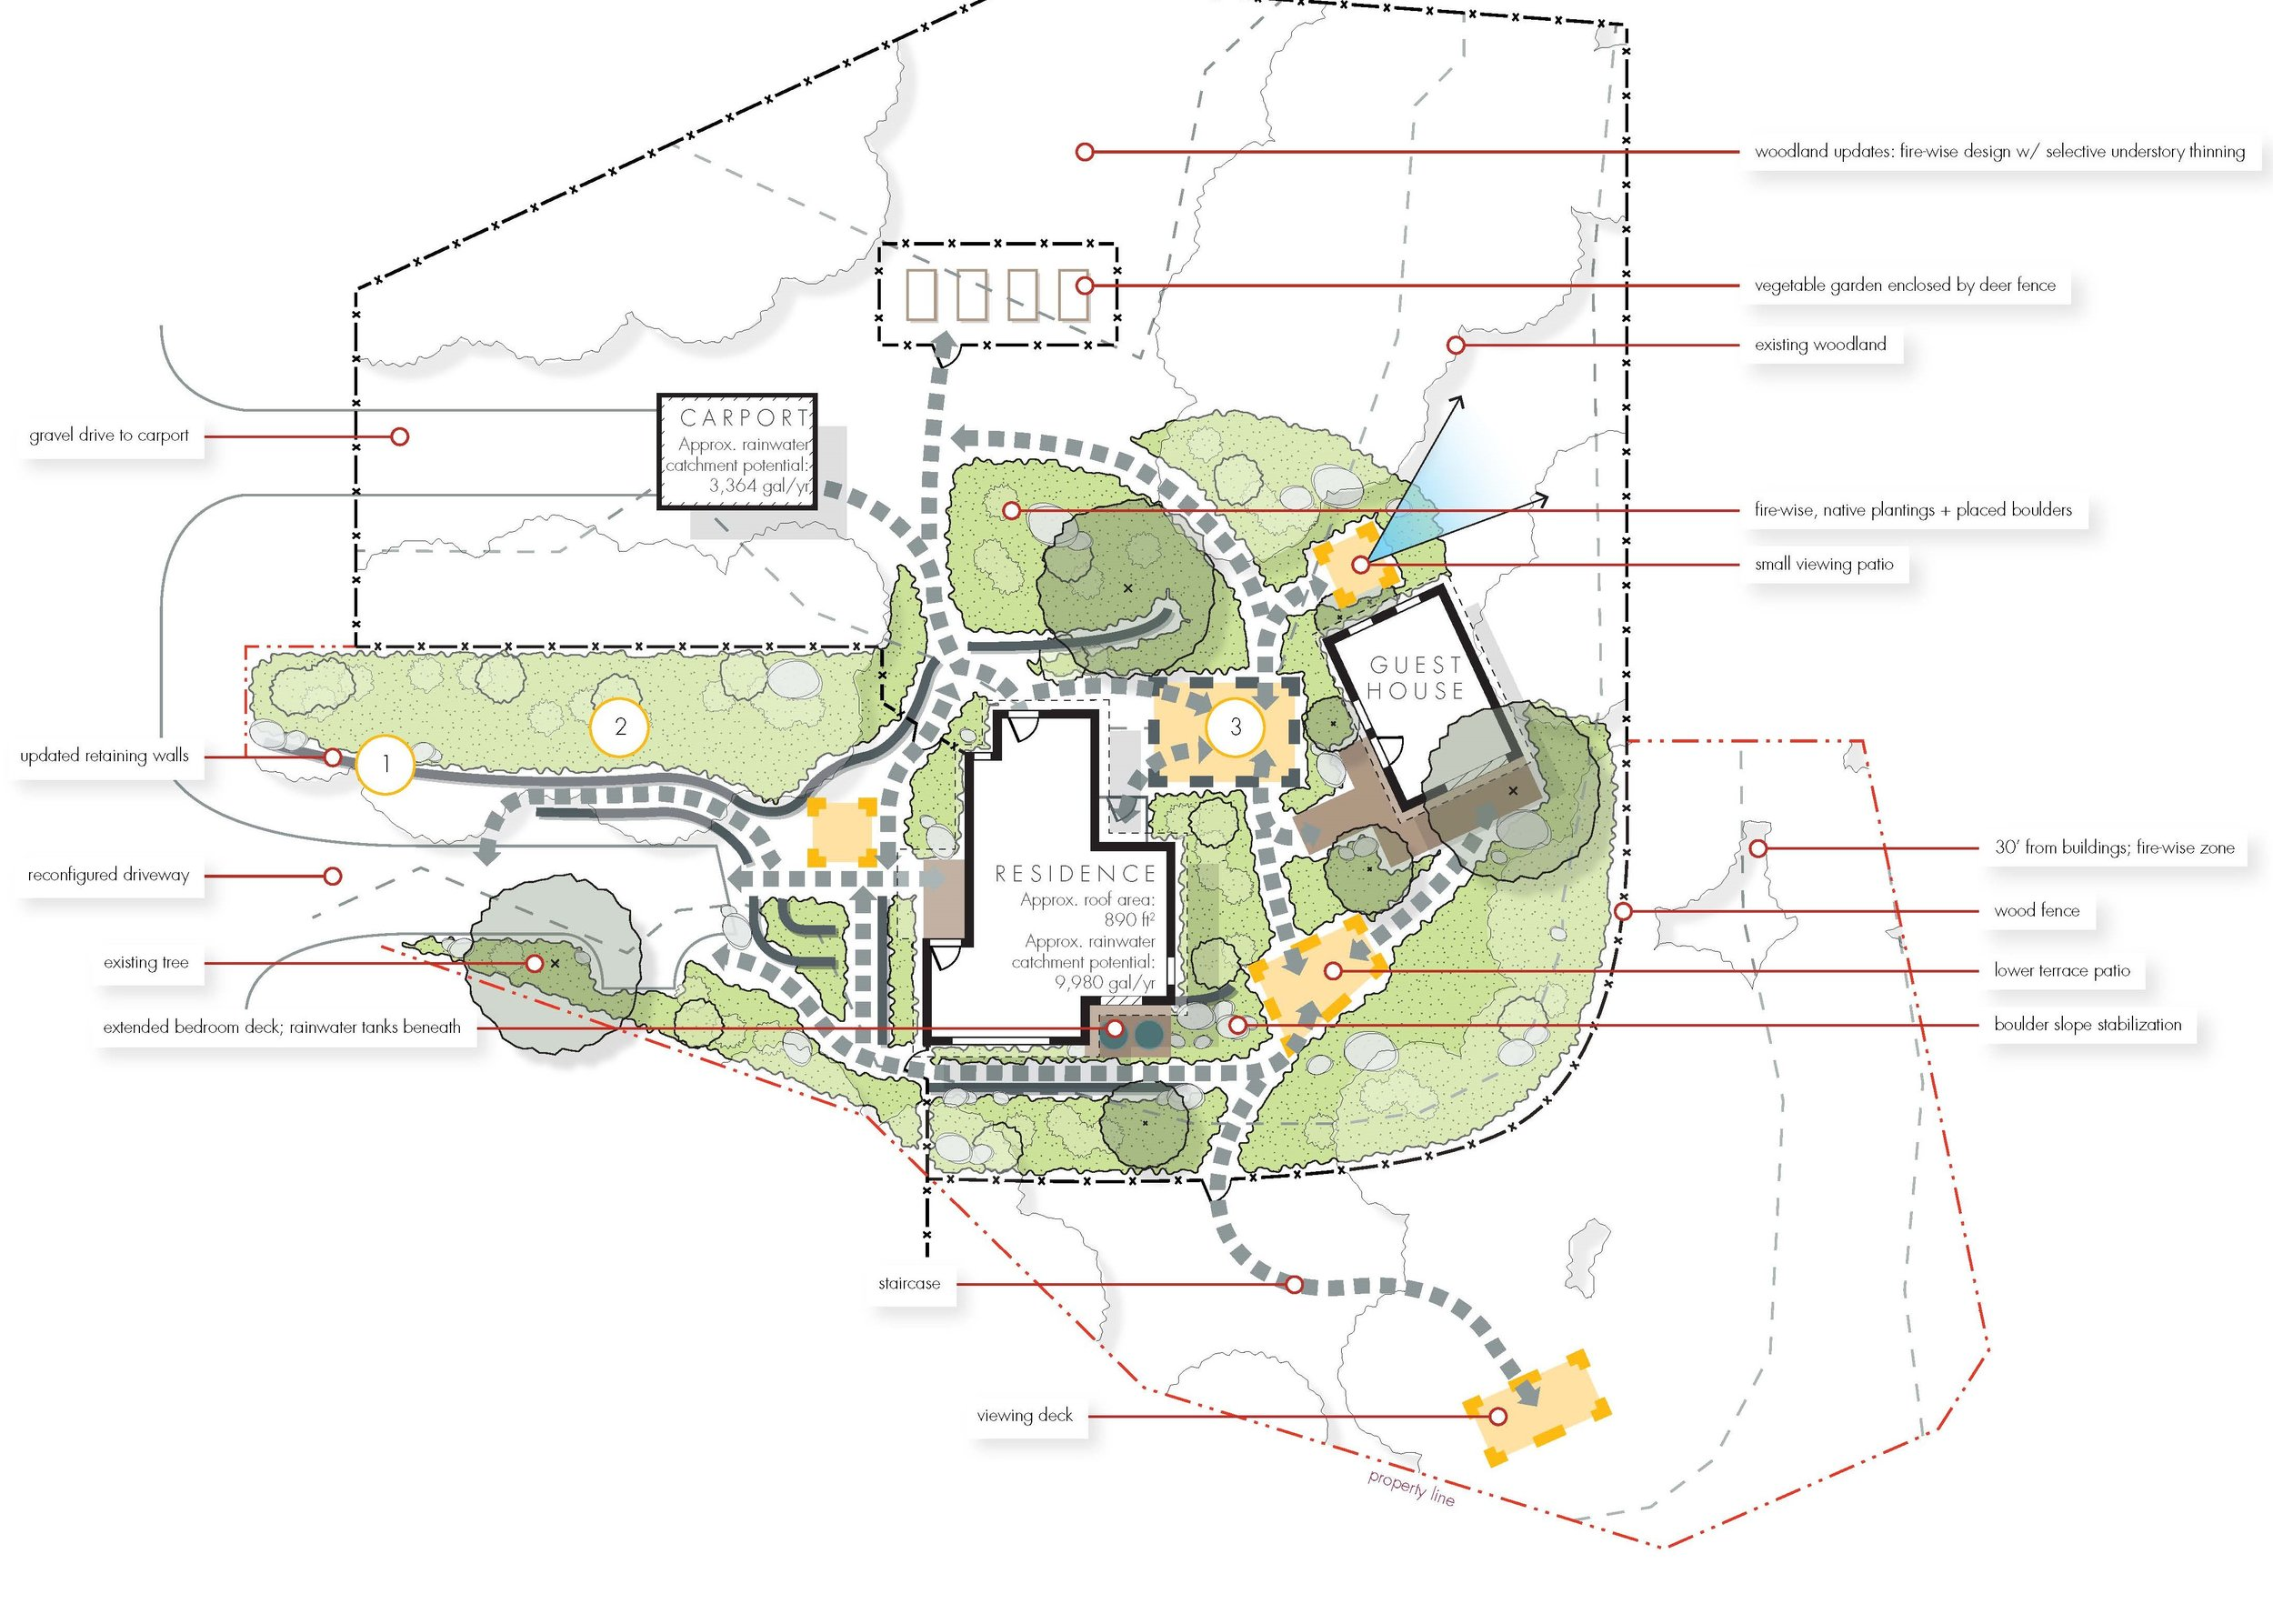 Conceptual Design Site Planning Landscape Architecture Residential Examplenbsp